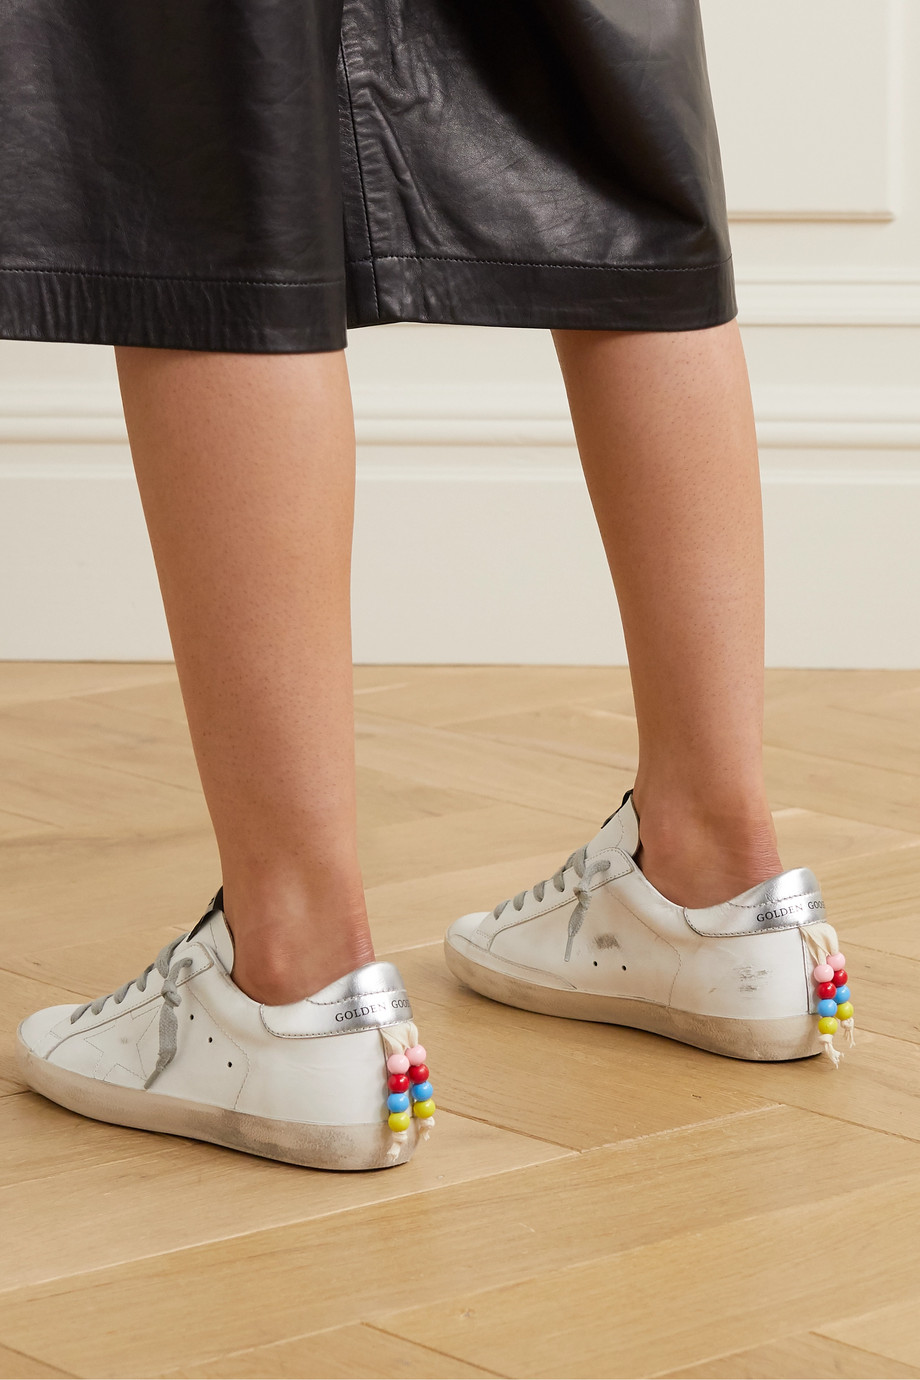 Golden Goose Superstar bead-embellished distressed leather sneakers